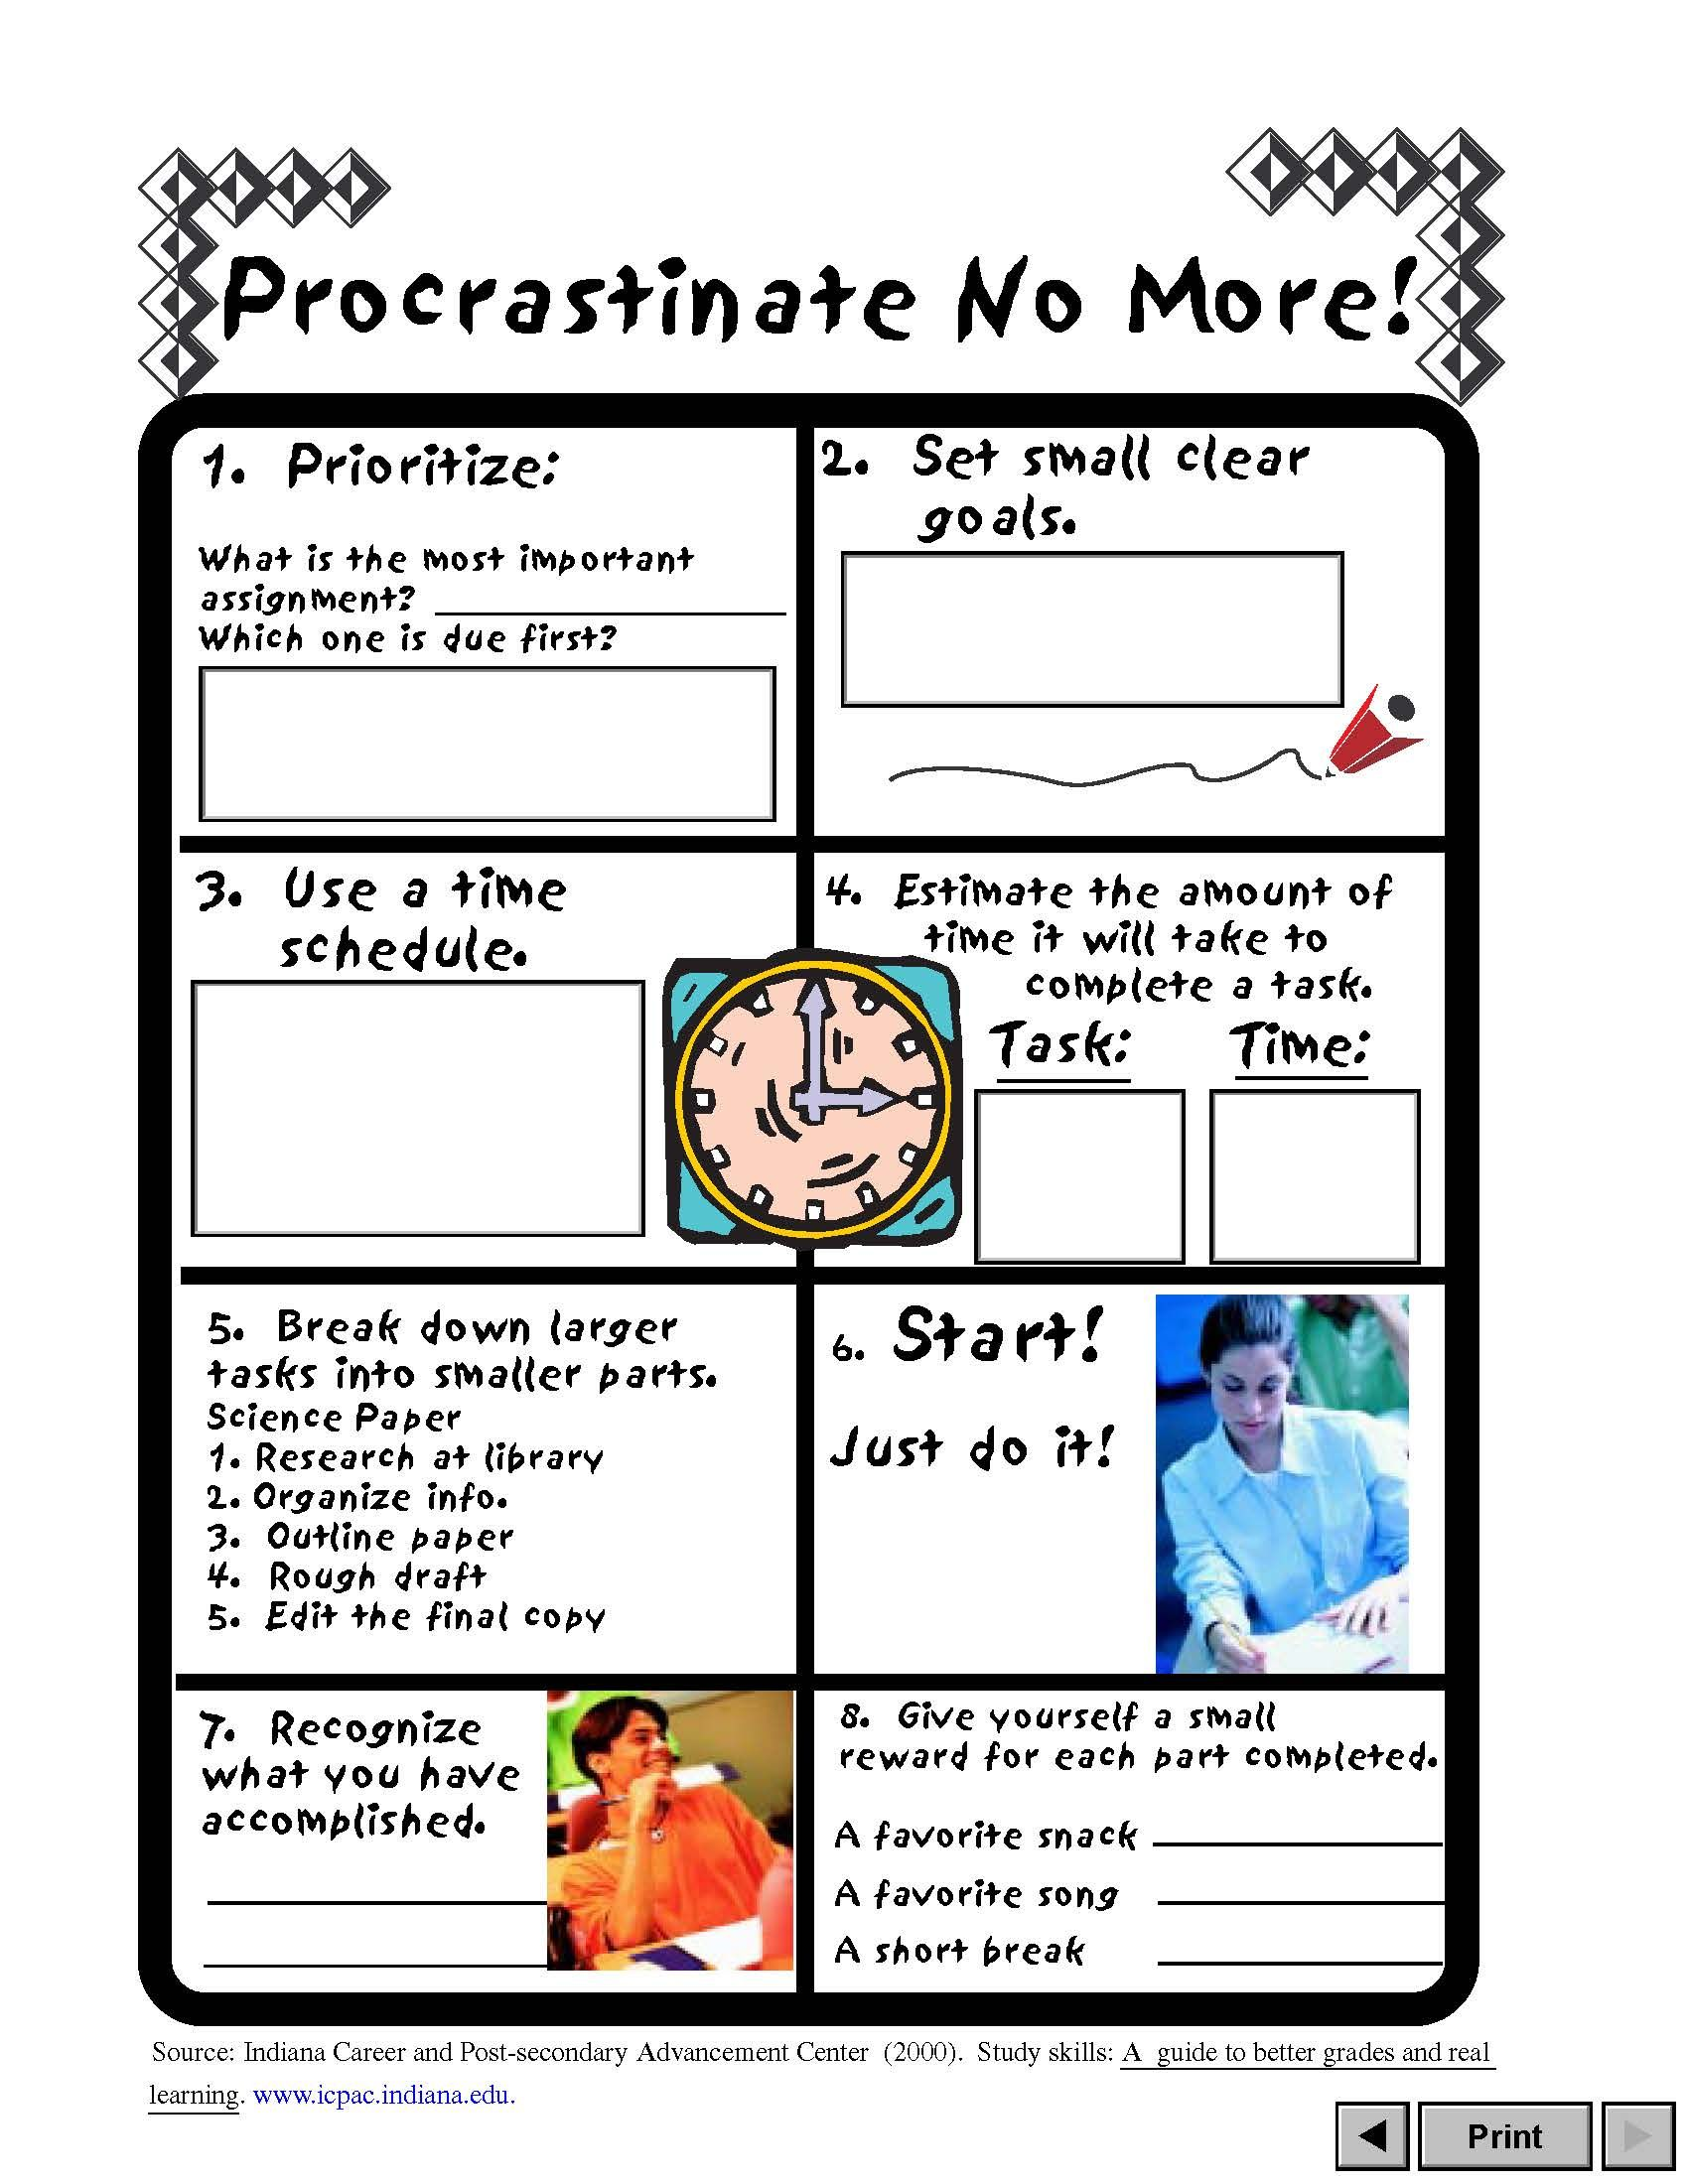 Procrastinate No More Va Career View A Worksheet To Help Prioritize Schedule Start